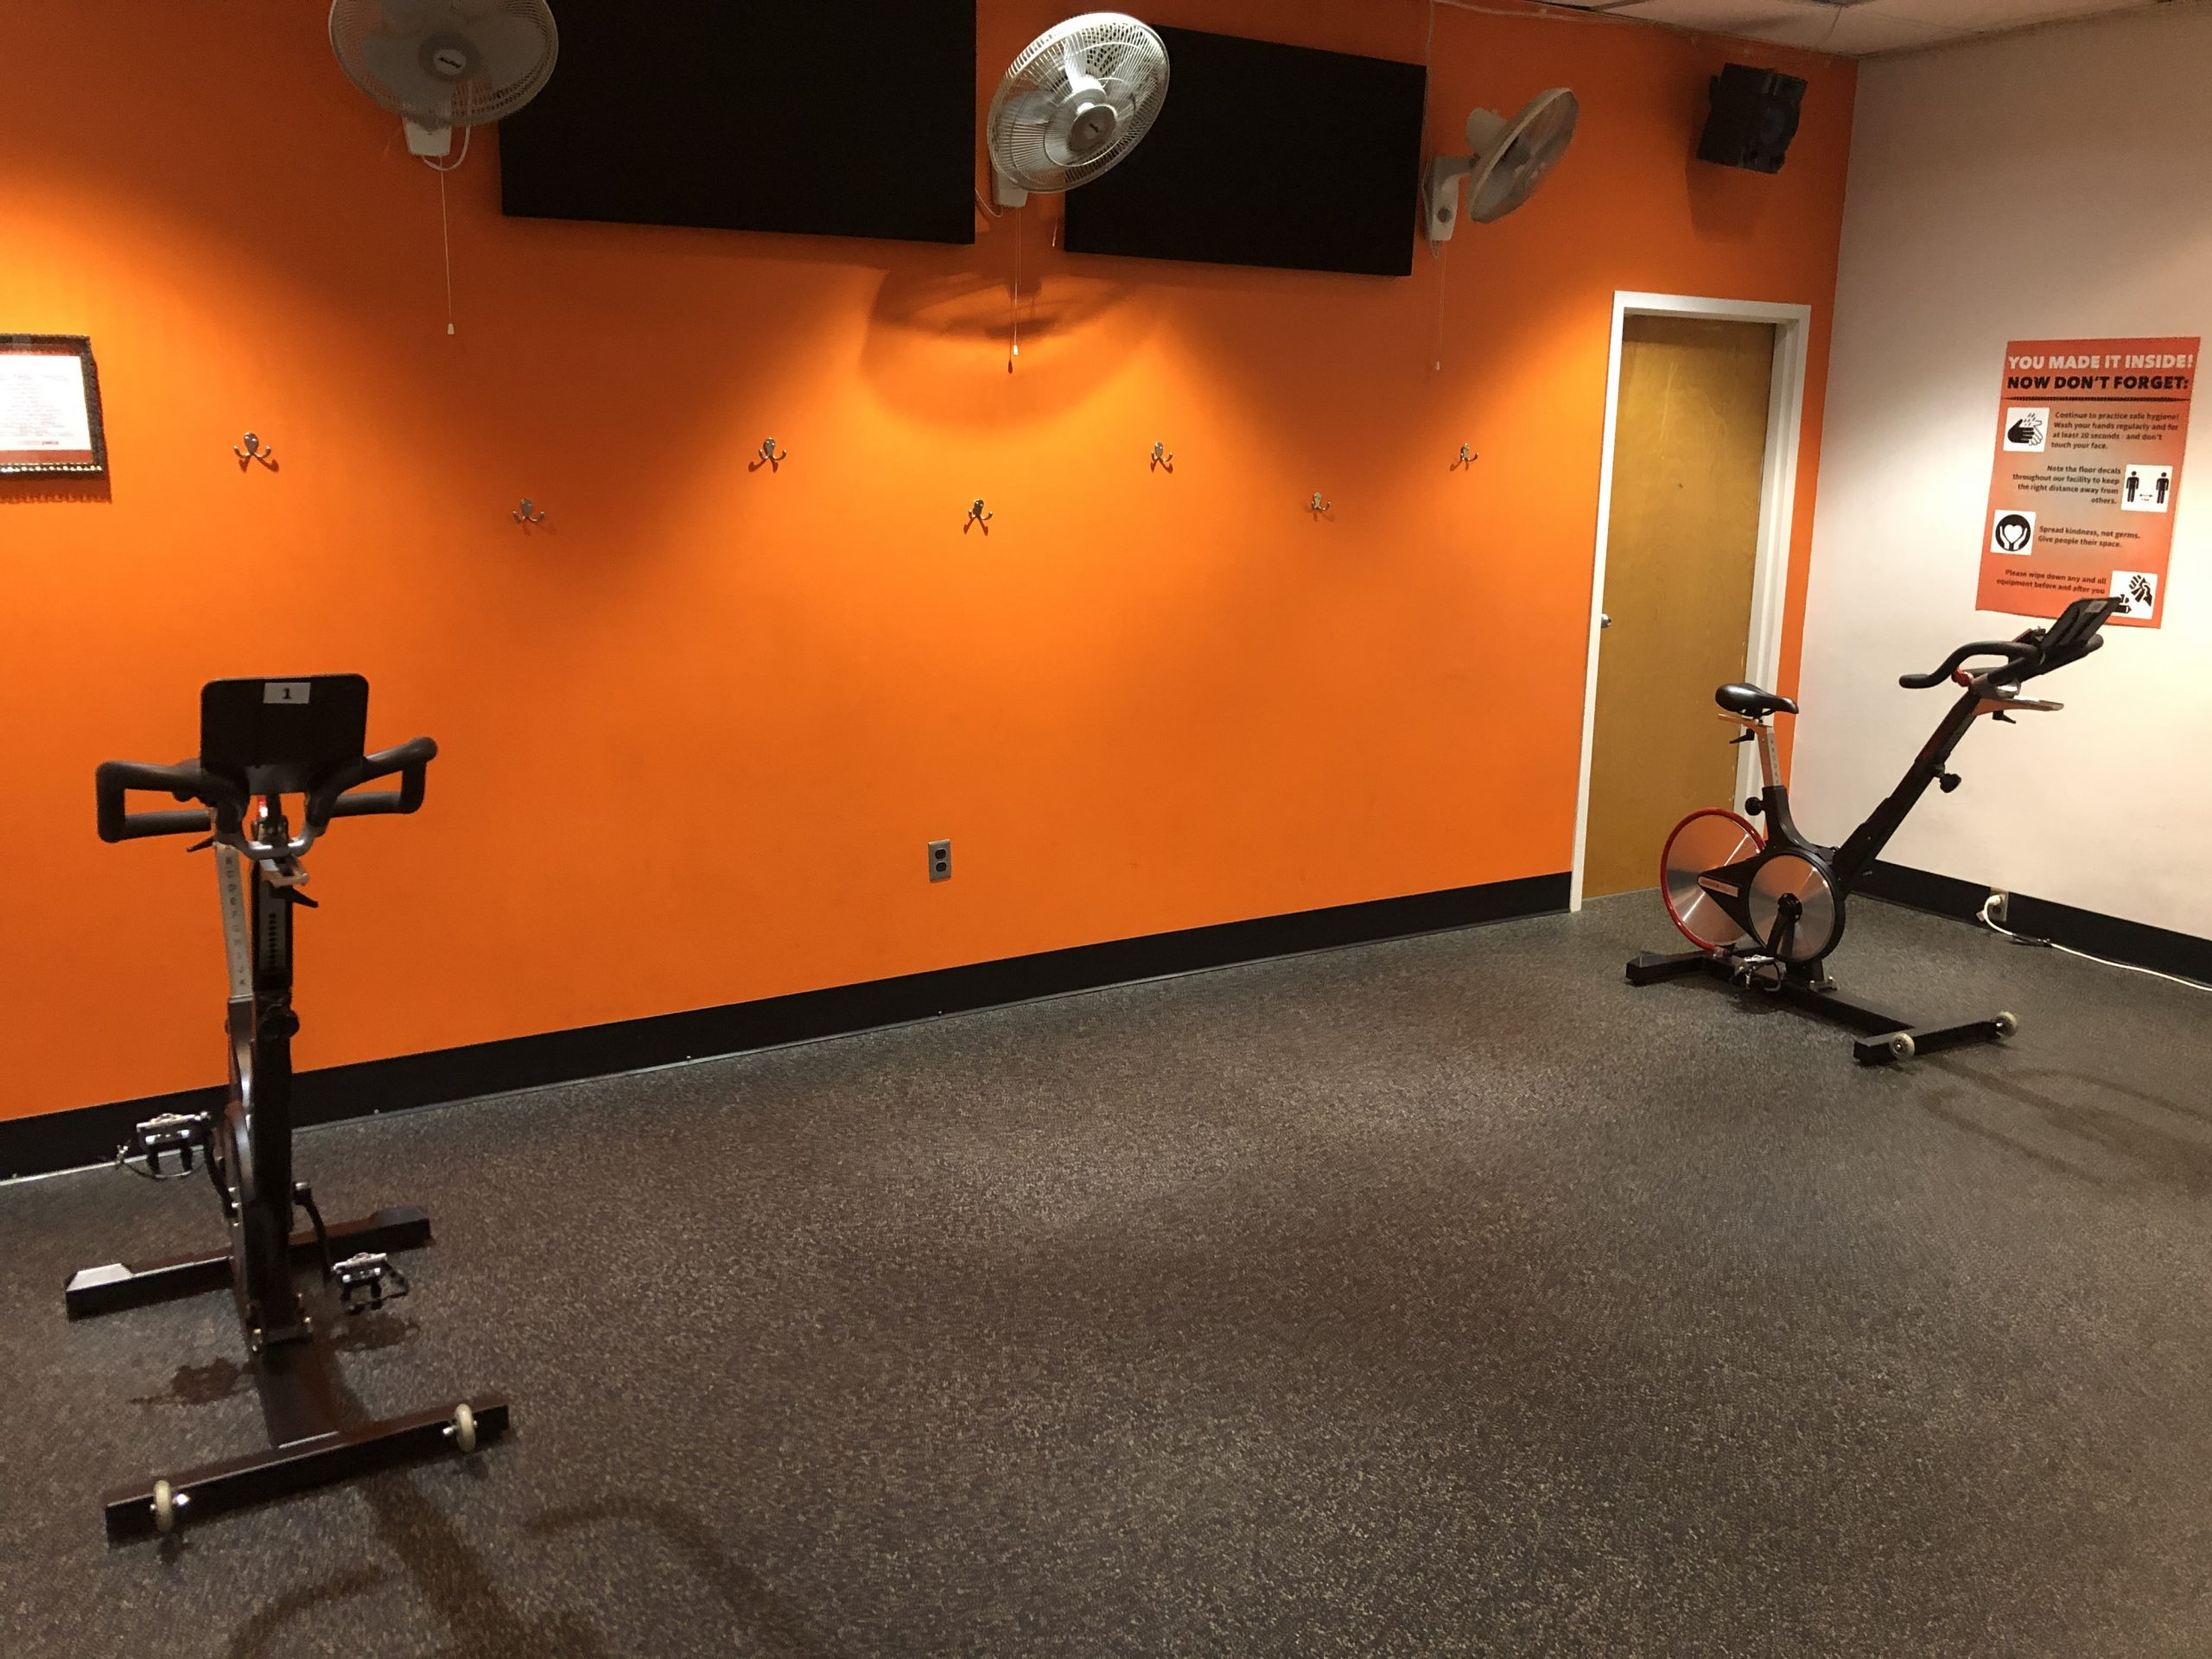 cycle class, COVID19, social distancing, fitness center, YWCA, gym, co-ed gym, workout